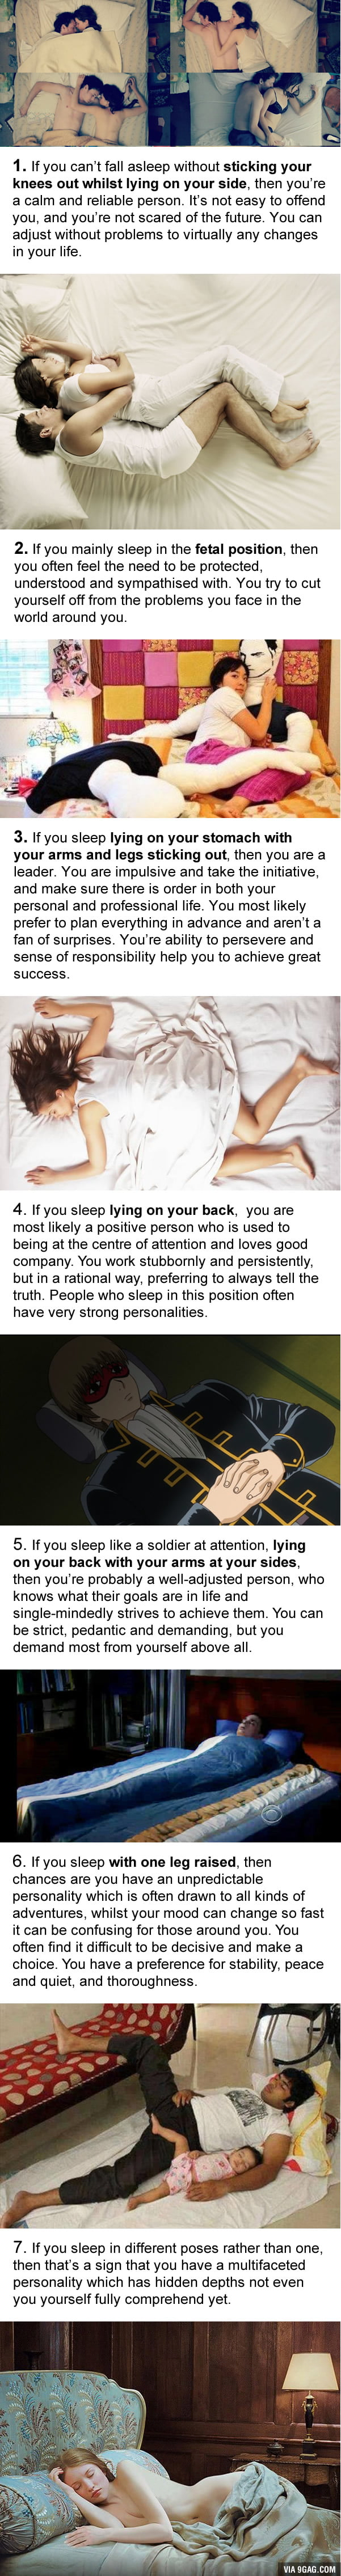 what your sleeping position reveals about your personality 9gag what your sleeping position reveals about your personality